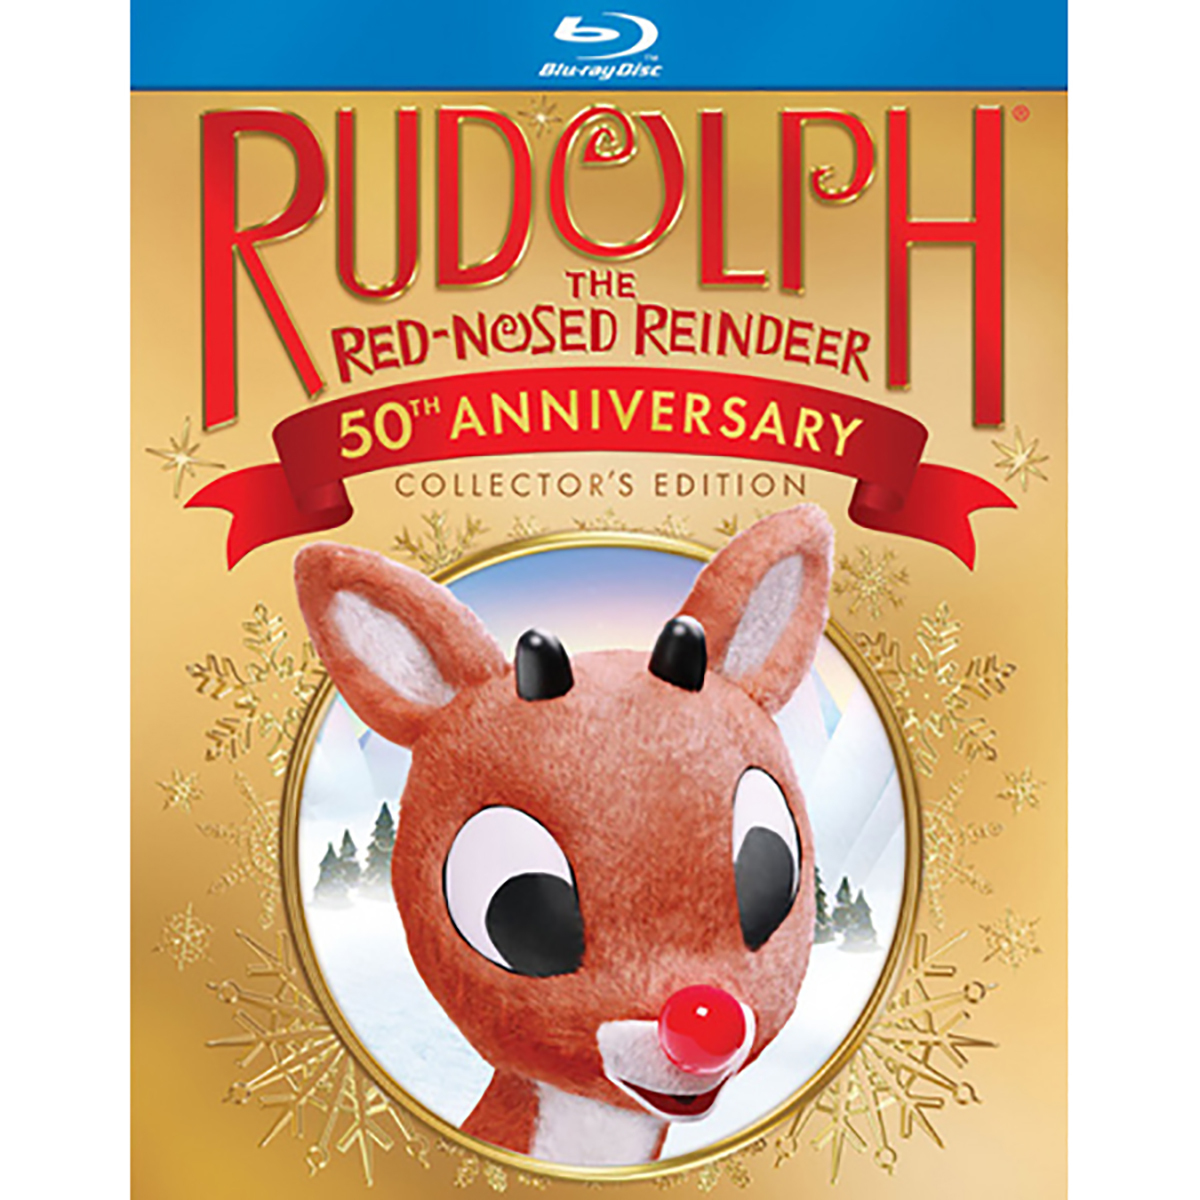 Rudolph The Red Nosed Reindeer: 50th Anniversary Collection Blu-ray -  DVDs & Videos 6445-731264